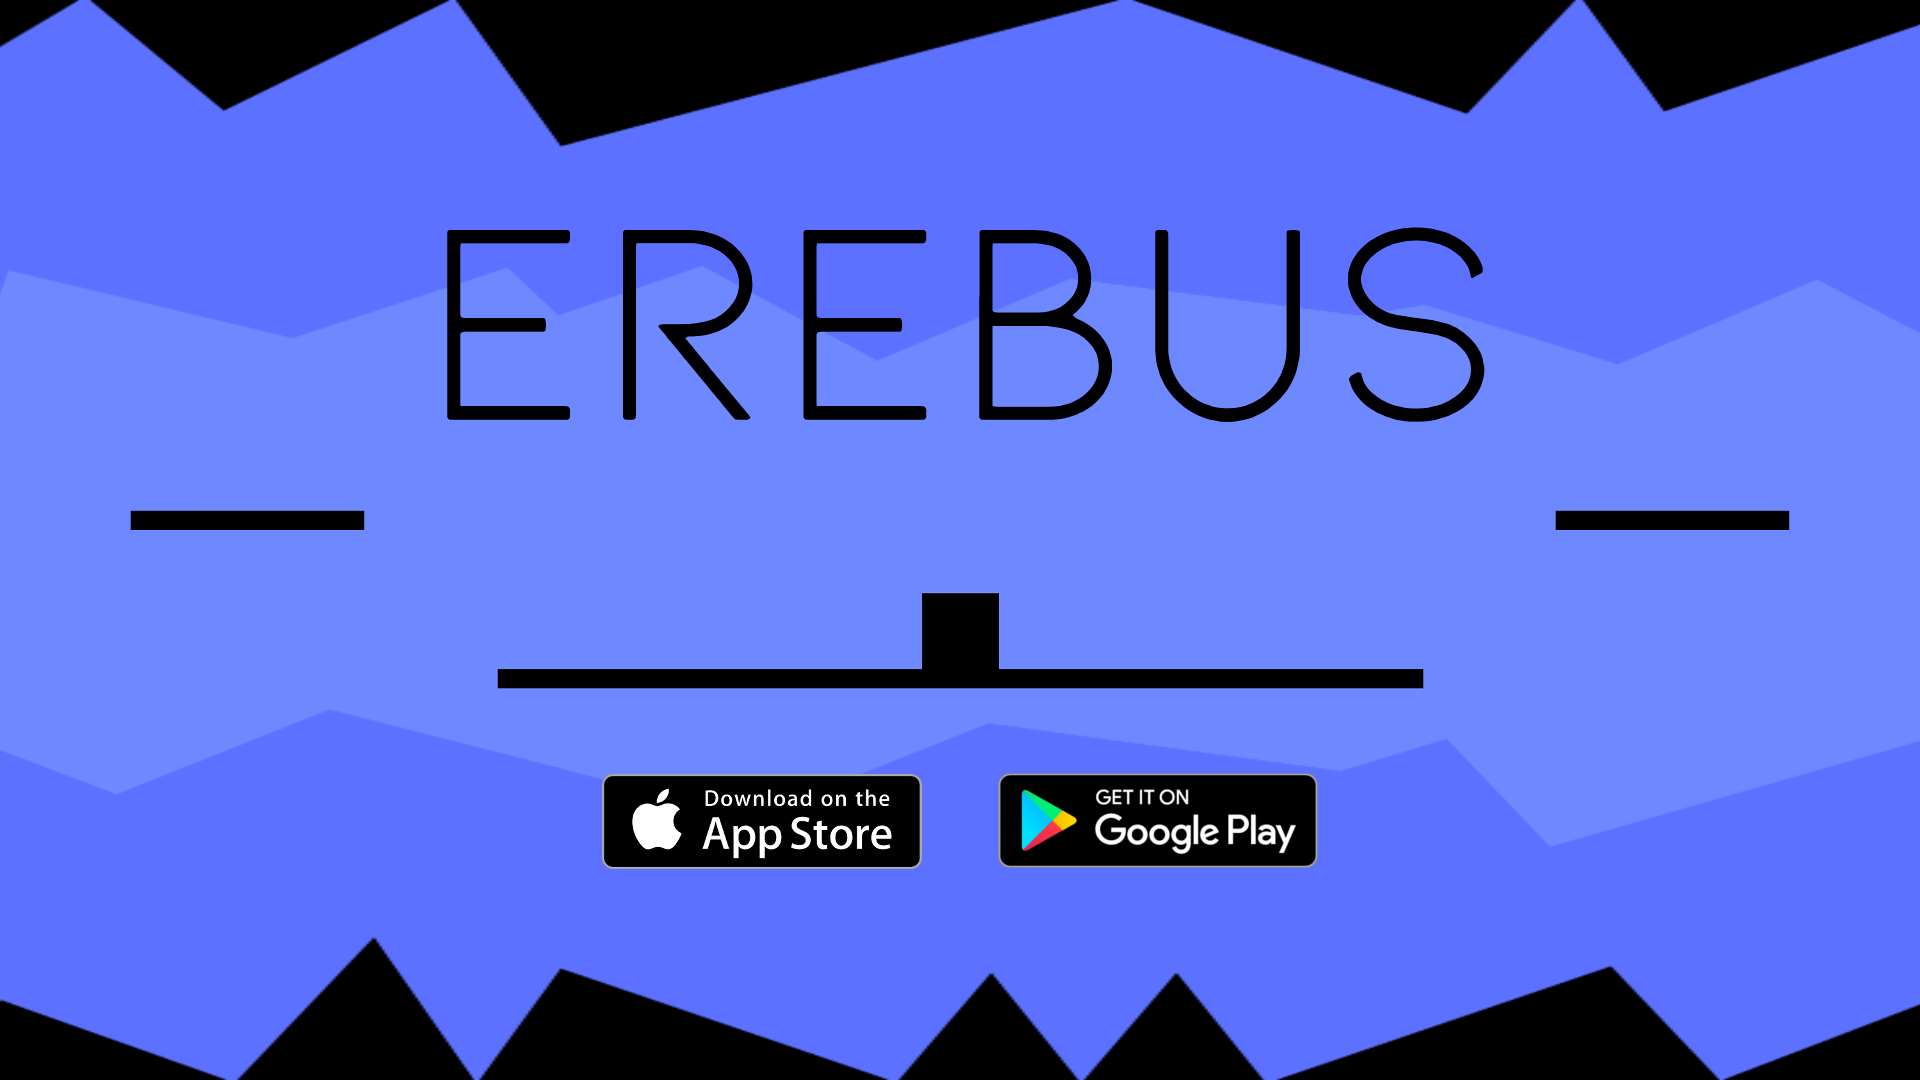 Erebus - Adknown Games